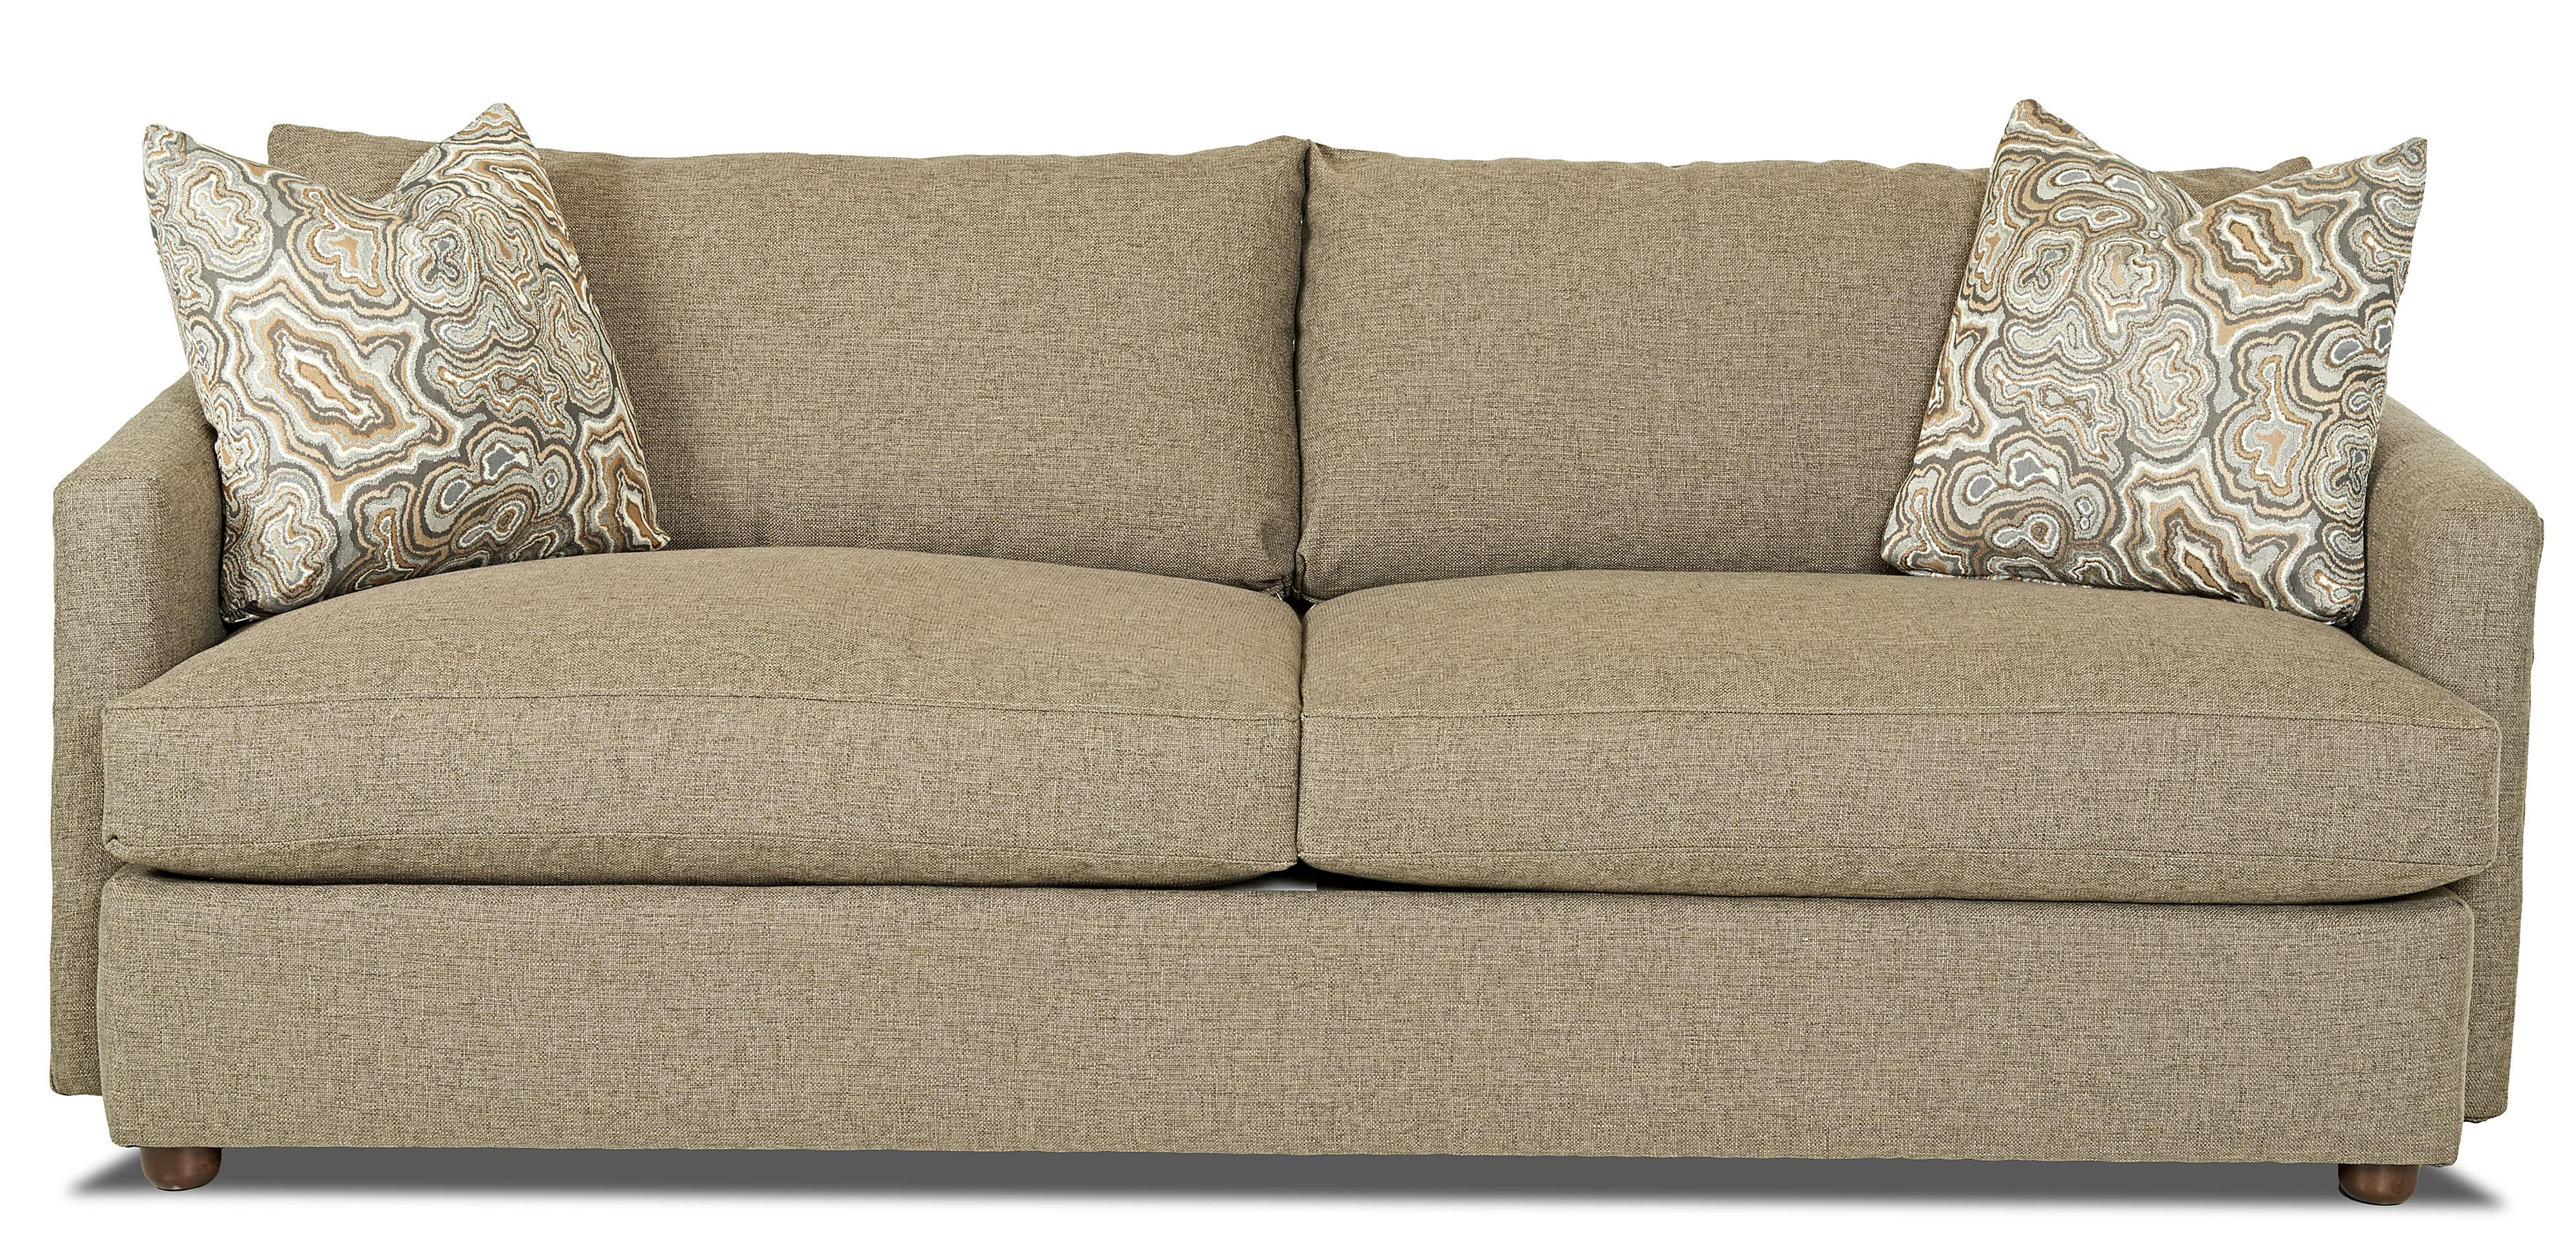 Leisure Extra Large Sofa by Klaussner at Northeast Factory Direct